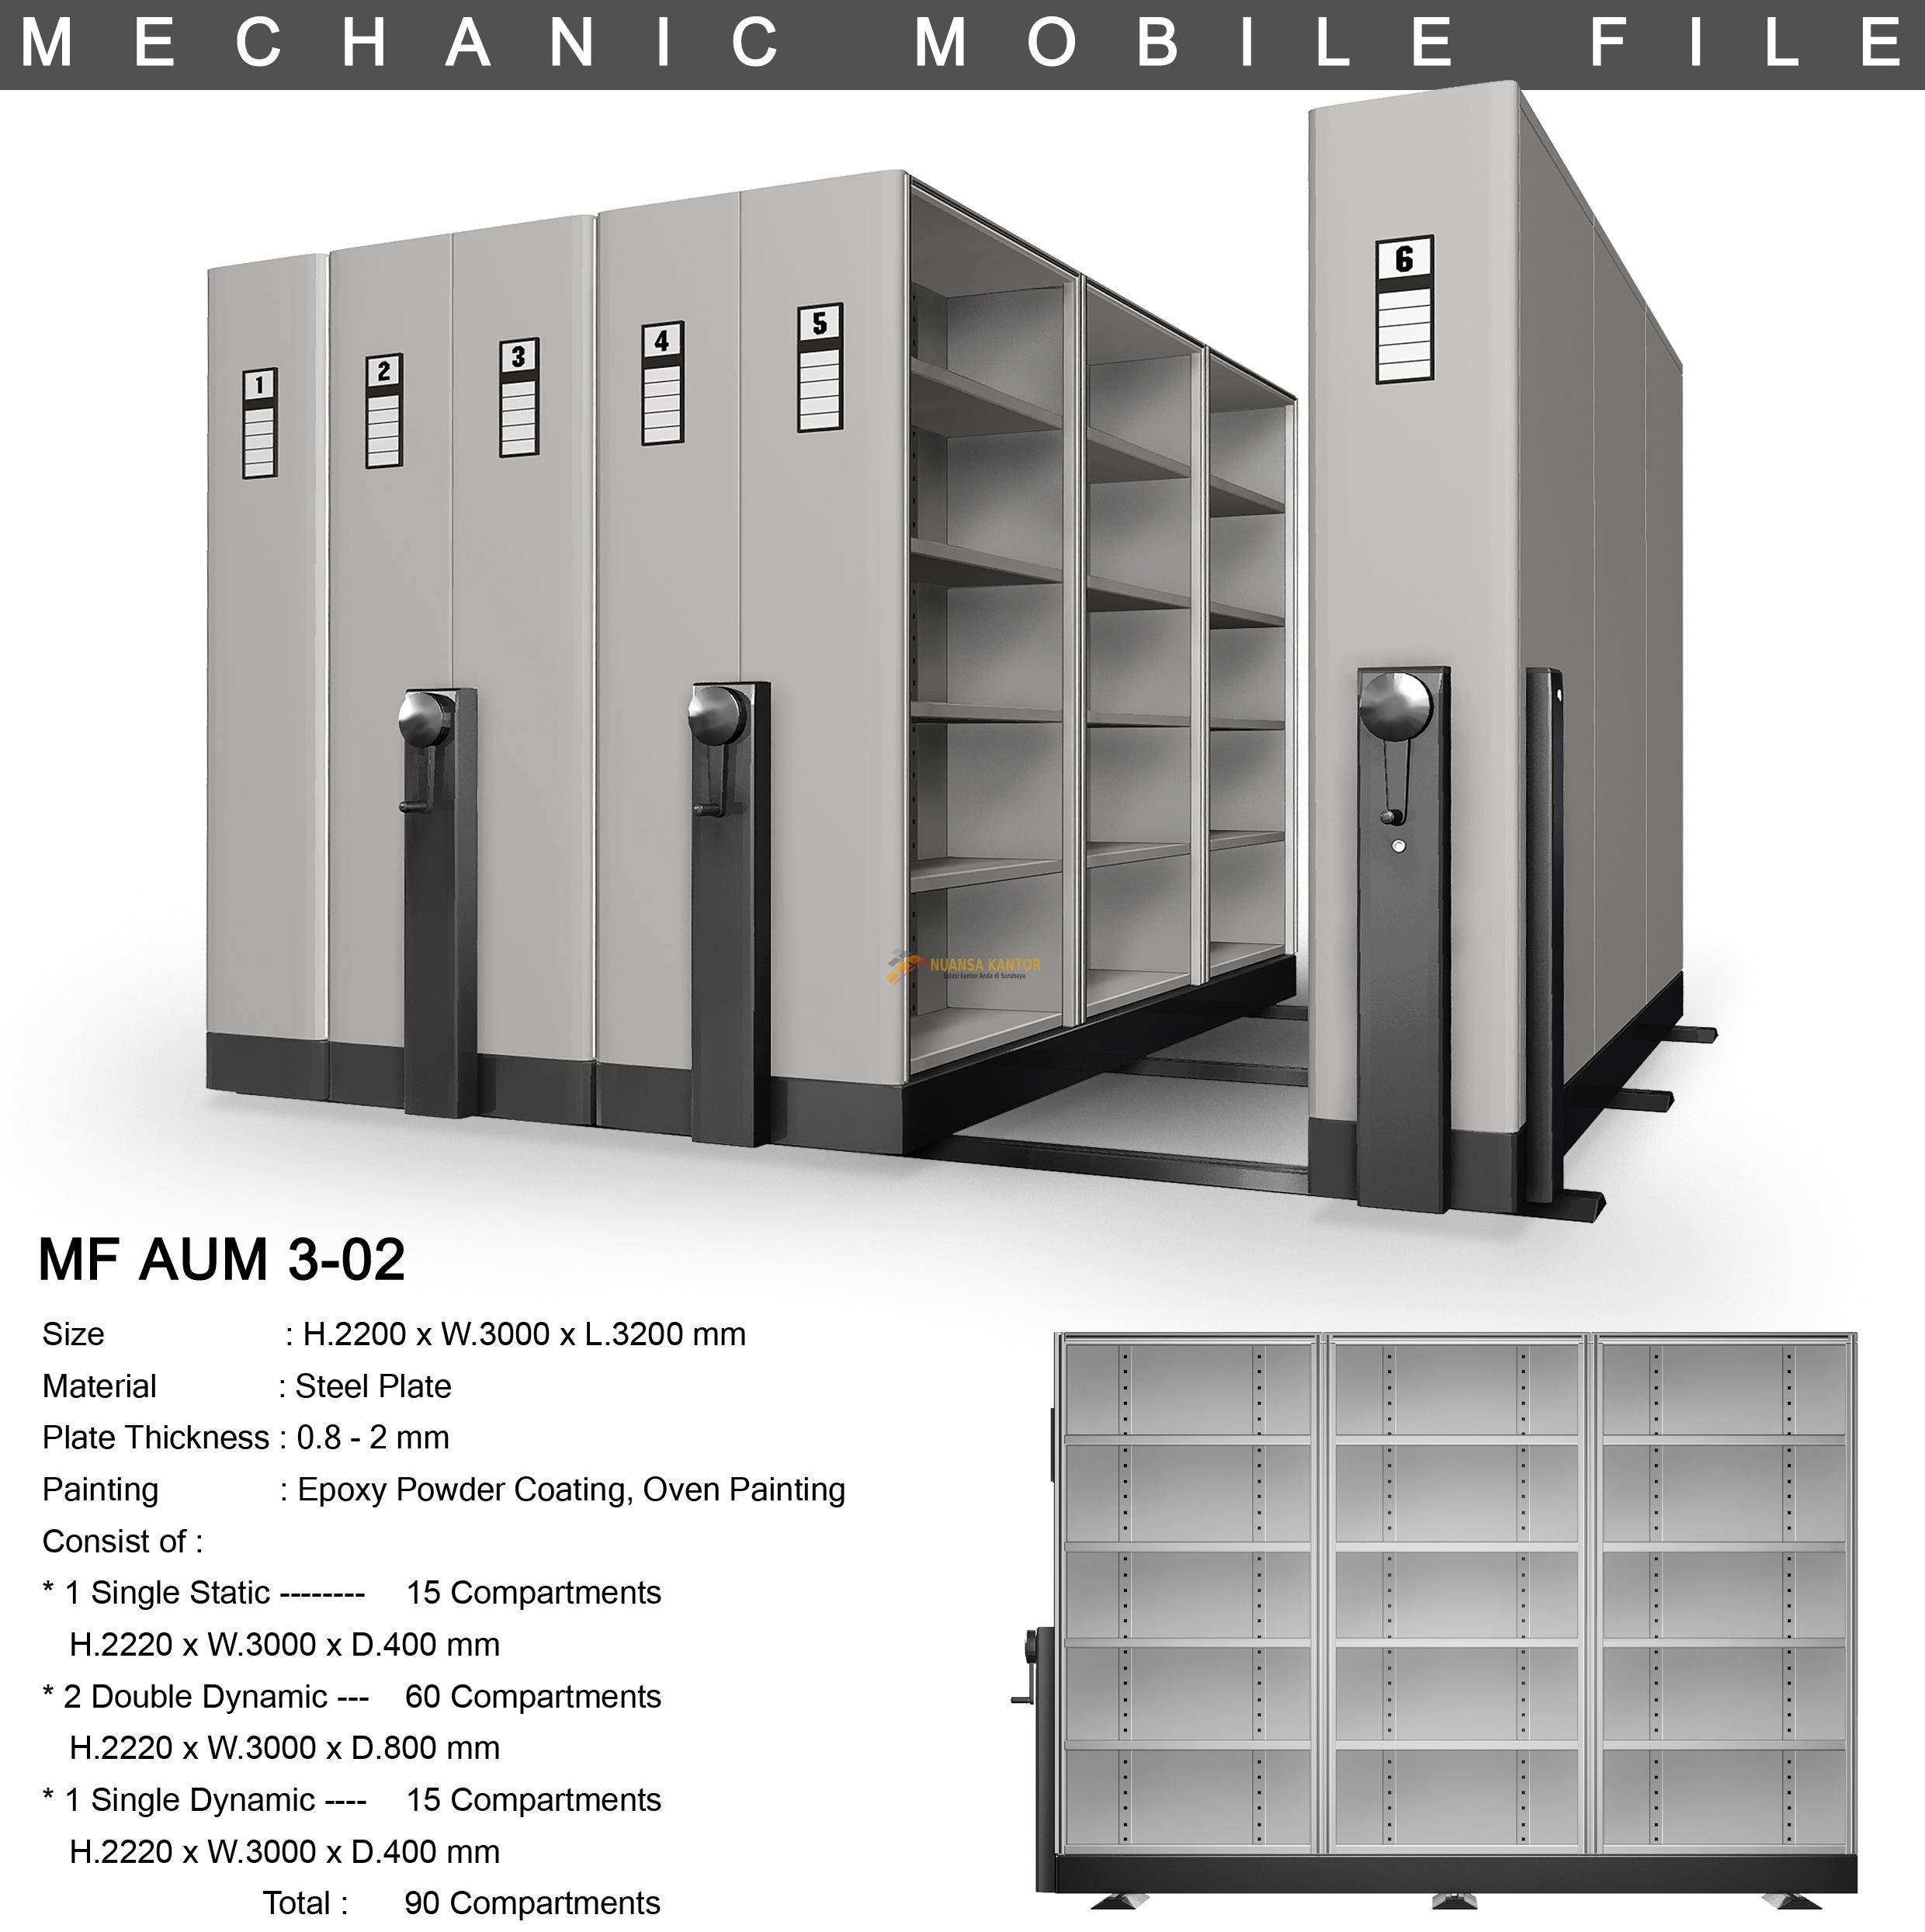 Mobile File Alba Mekanik MF AUM 3-02 ( 90 Compartments )